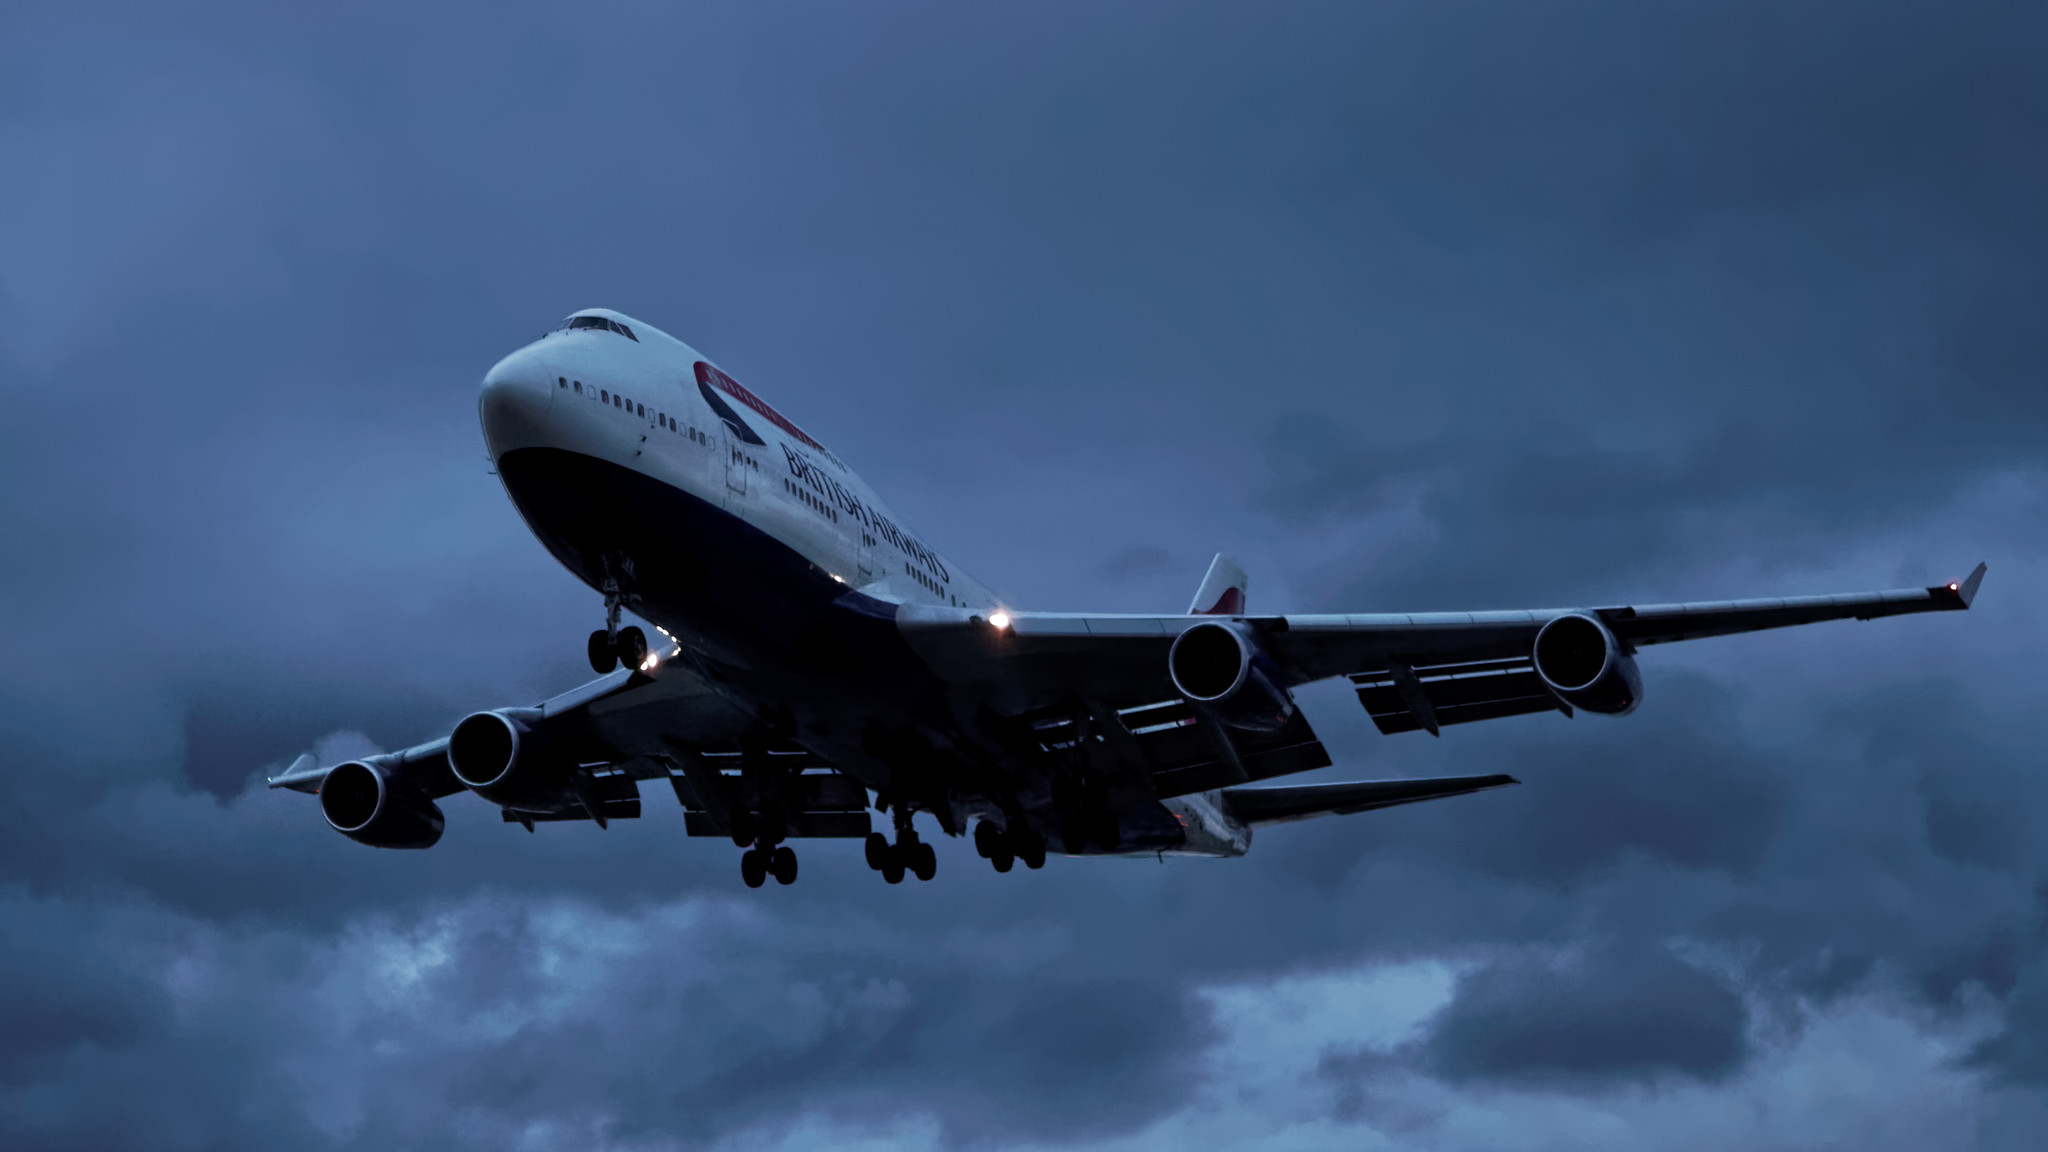 Violent winds from storm Ciara helps plane topple trans-Atlantic flight record